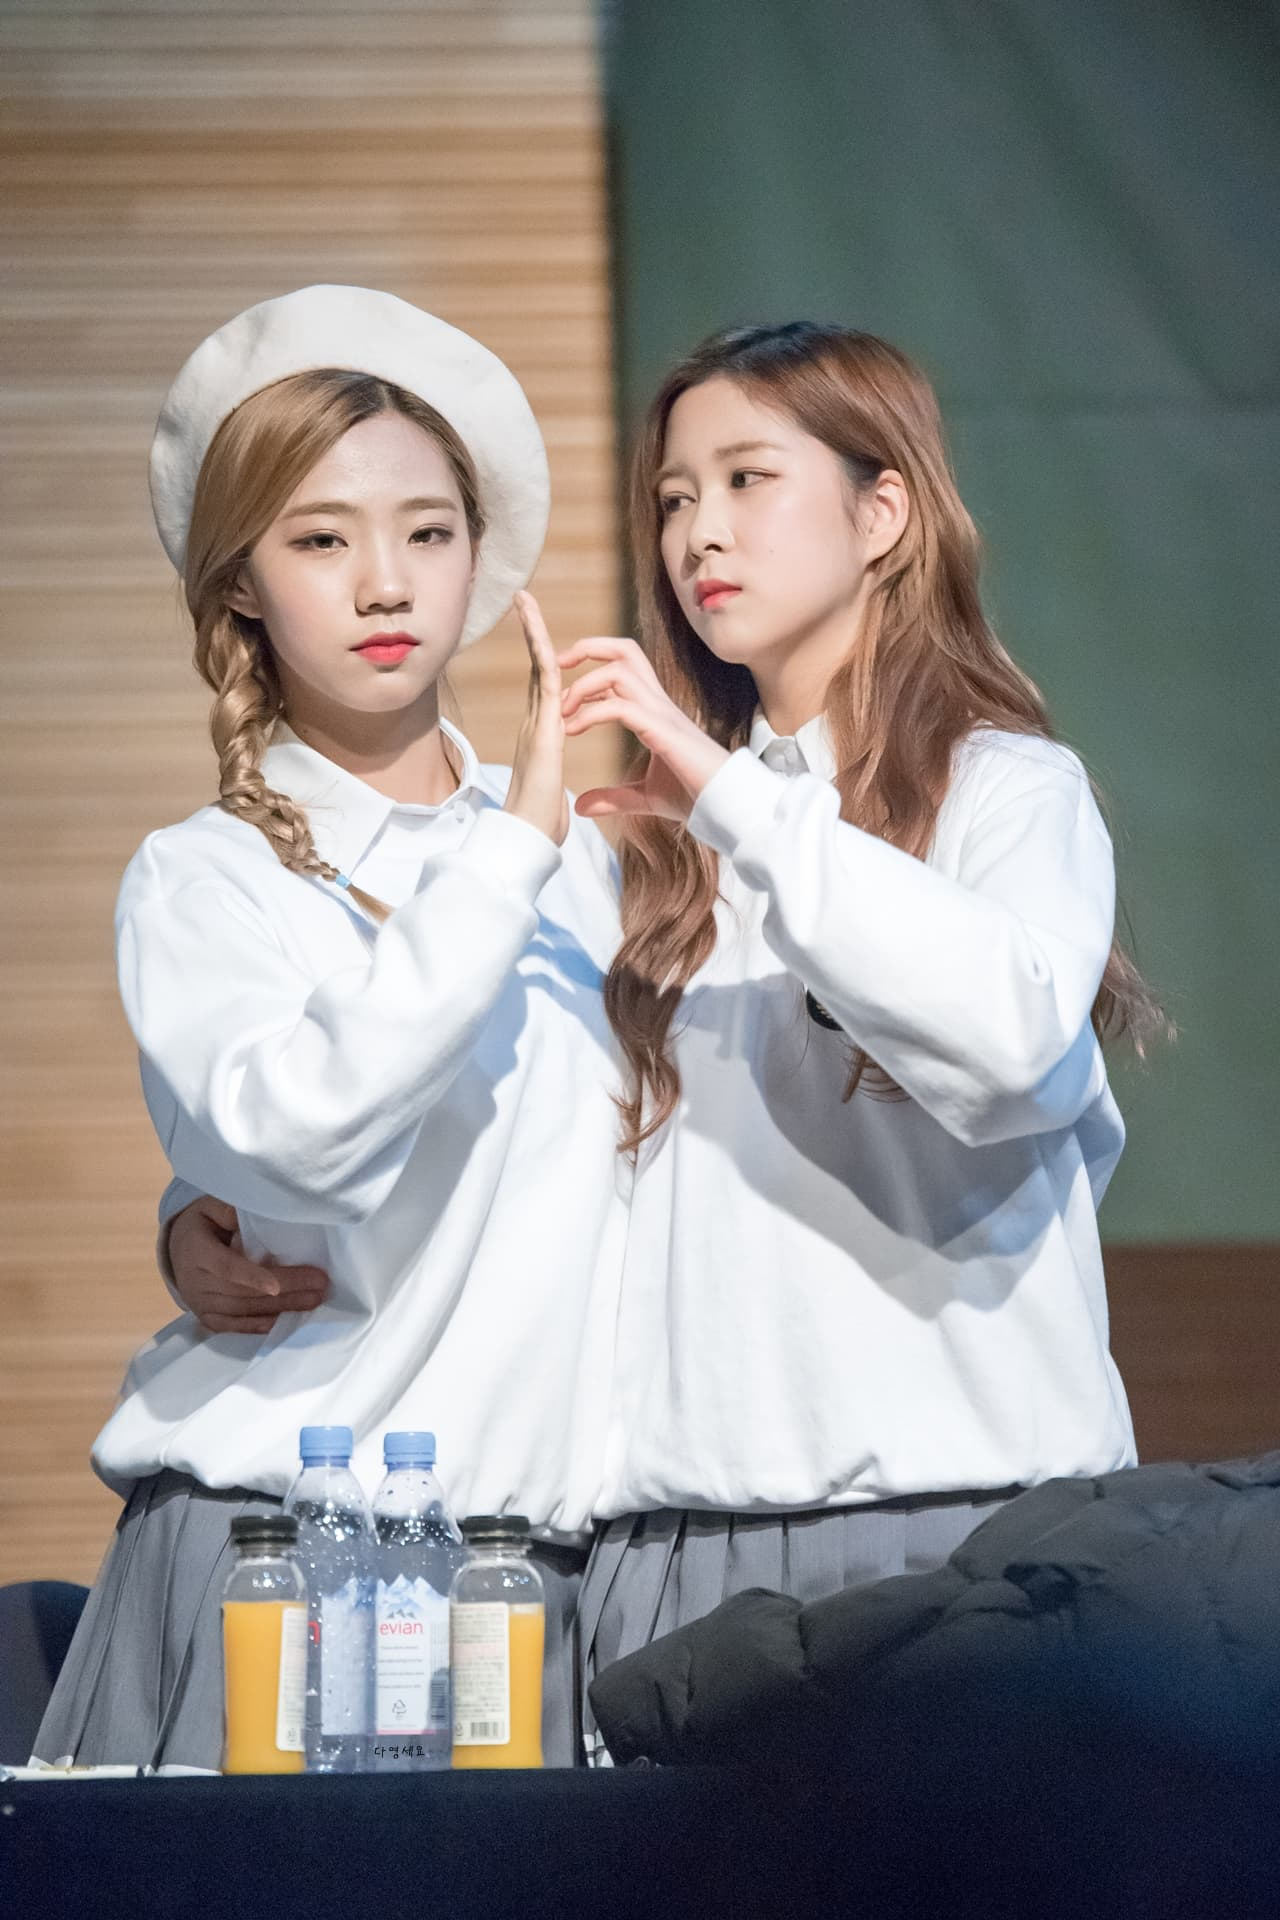 170311 WJSN - Jamsil Fansign Event - 233p